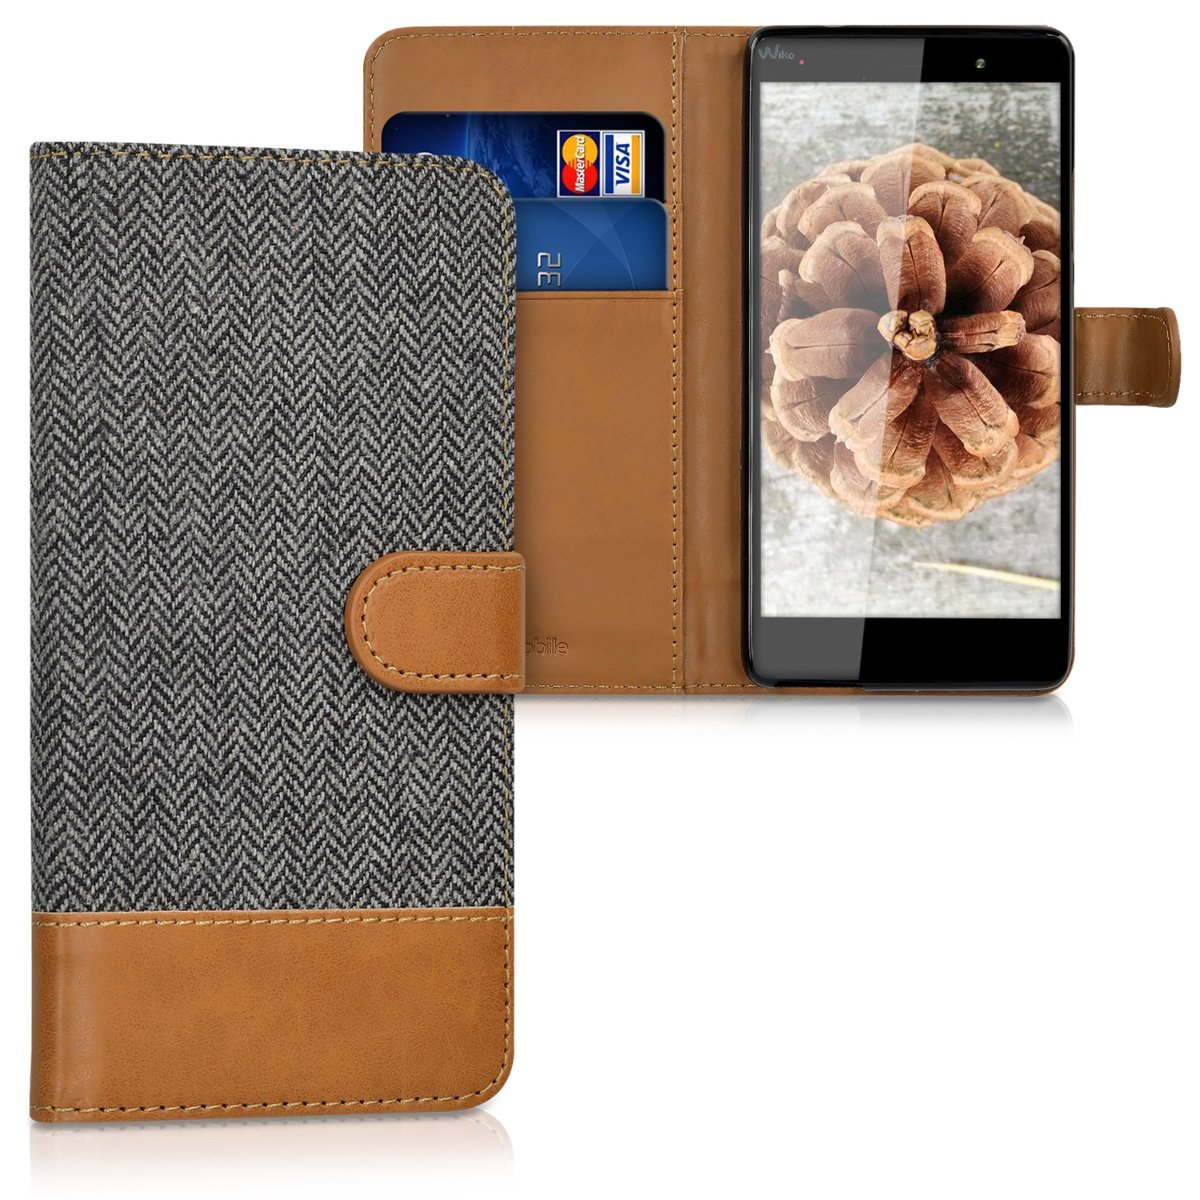 KW Θήκη - Πορτοφόλι Wiko Fever 4G - Anthracite/ Brown (37601.73)